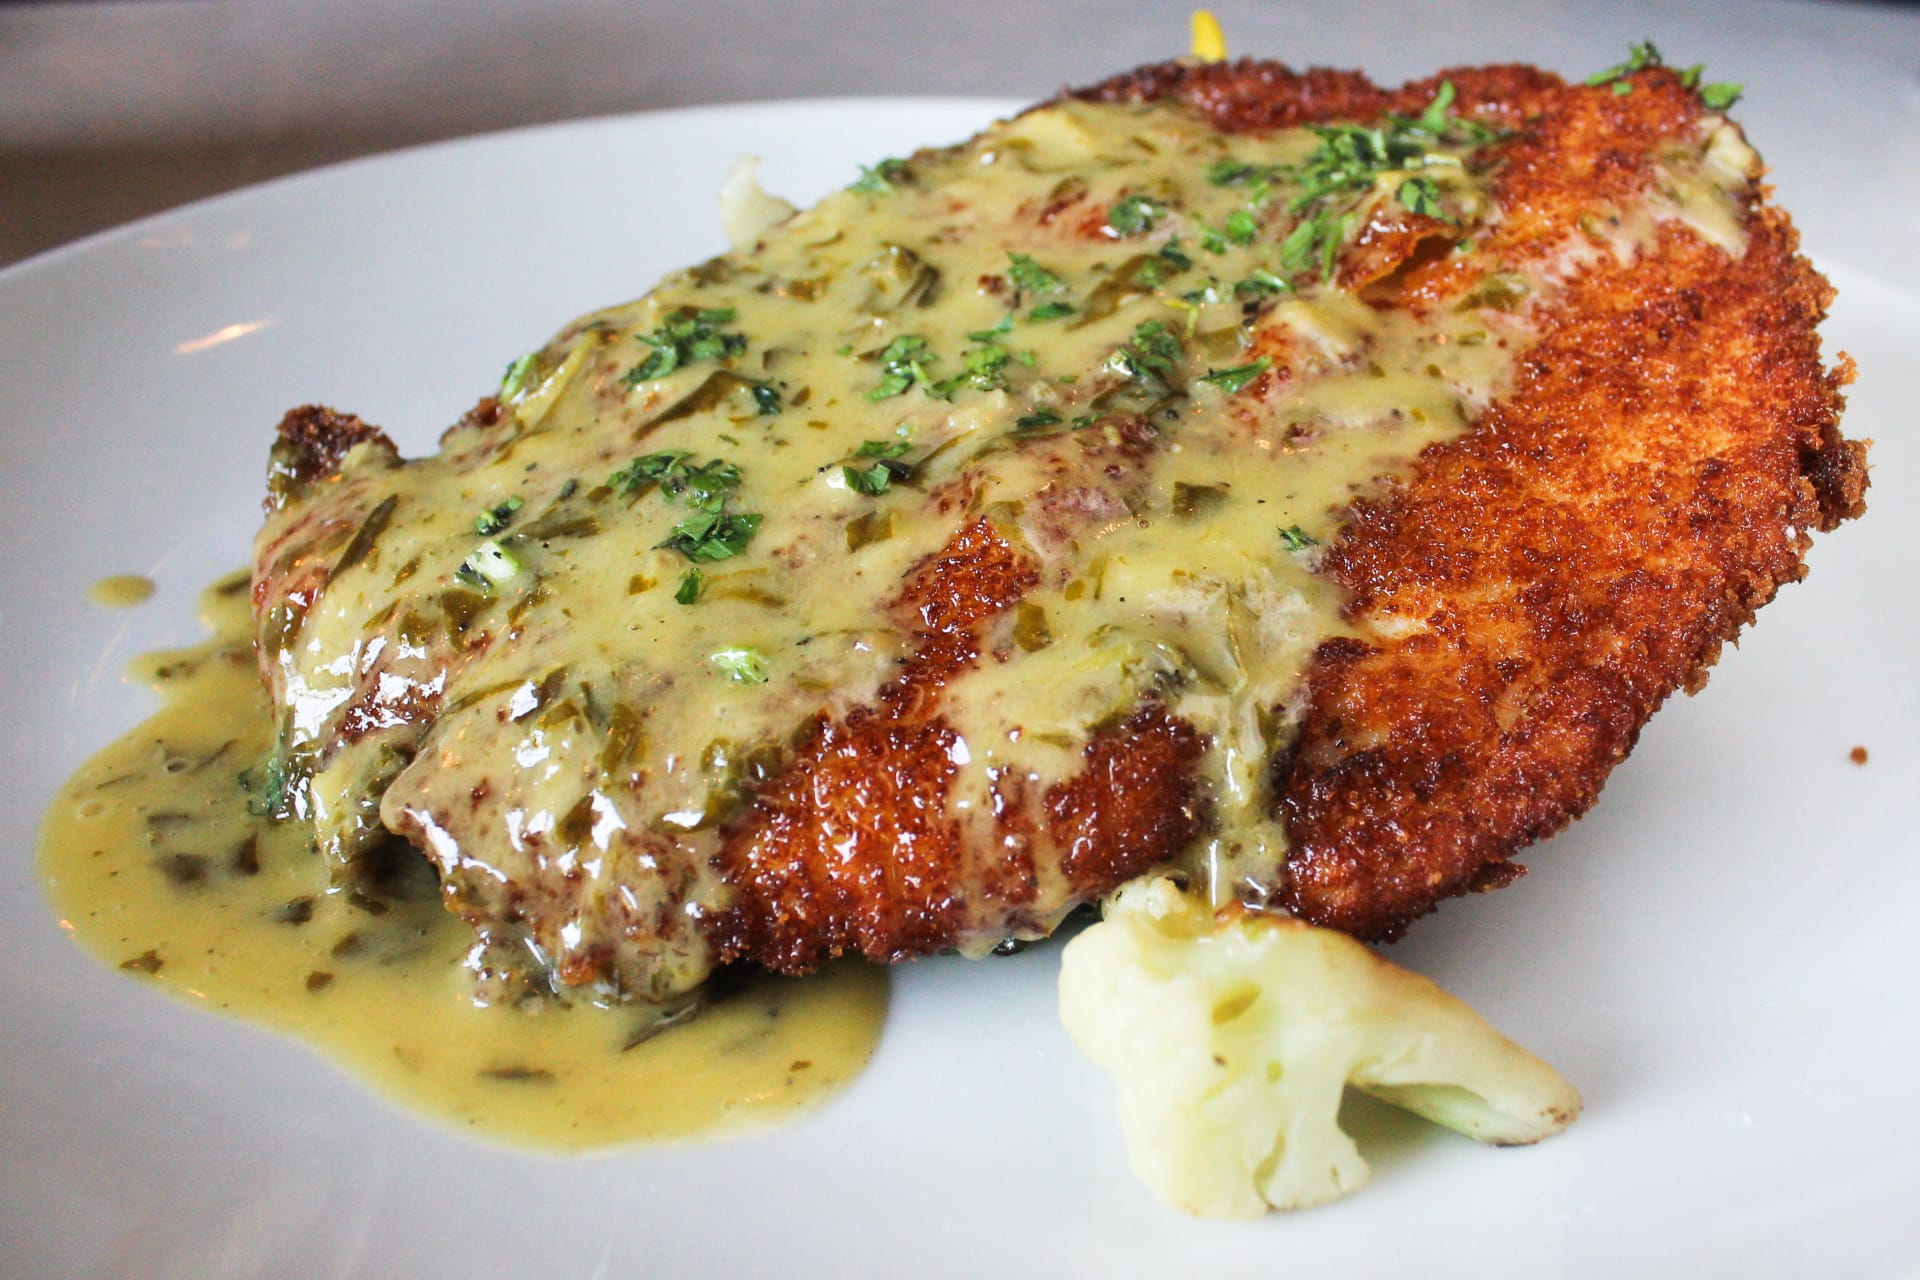 Crispy Jidori Chicken Schnitzel with Maitake Mushrooms